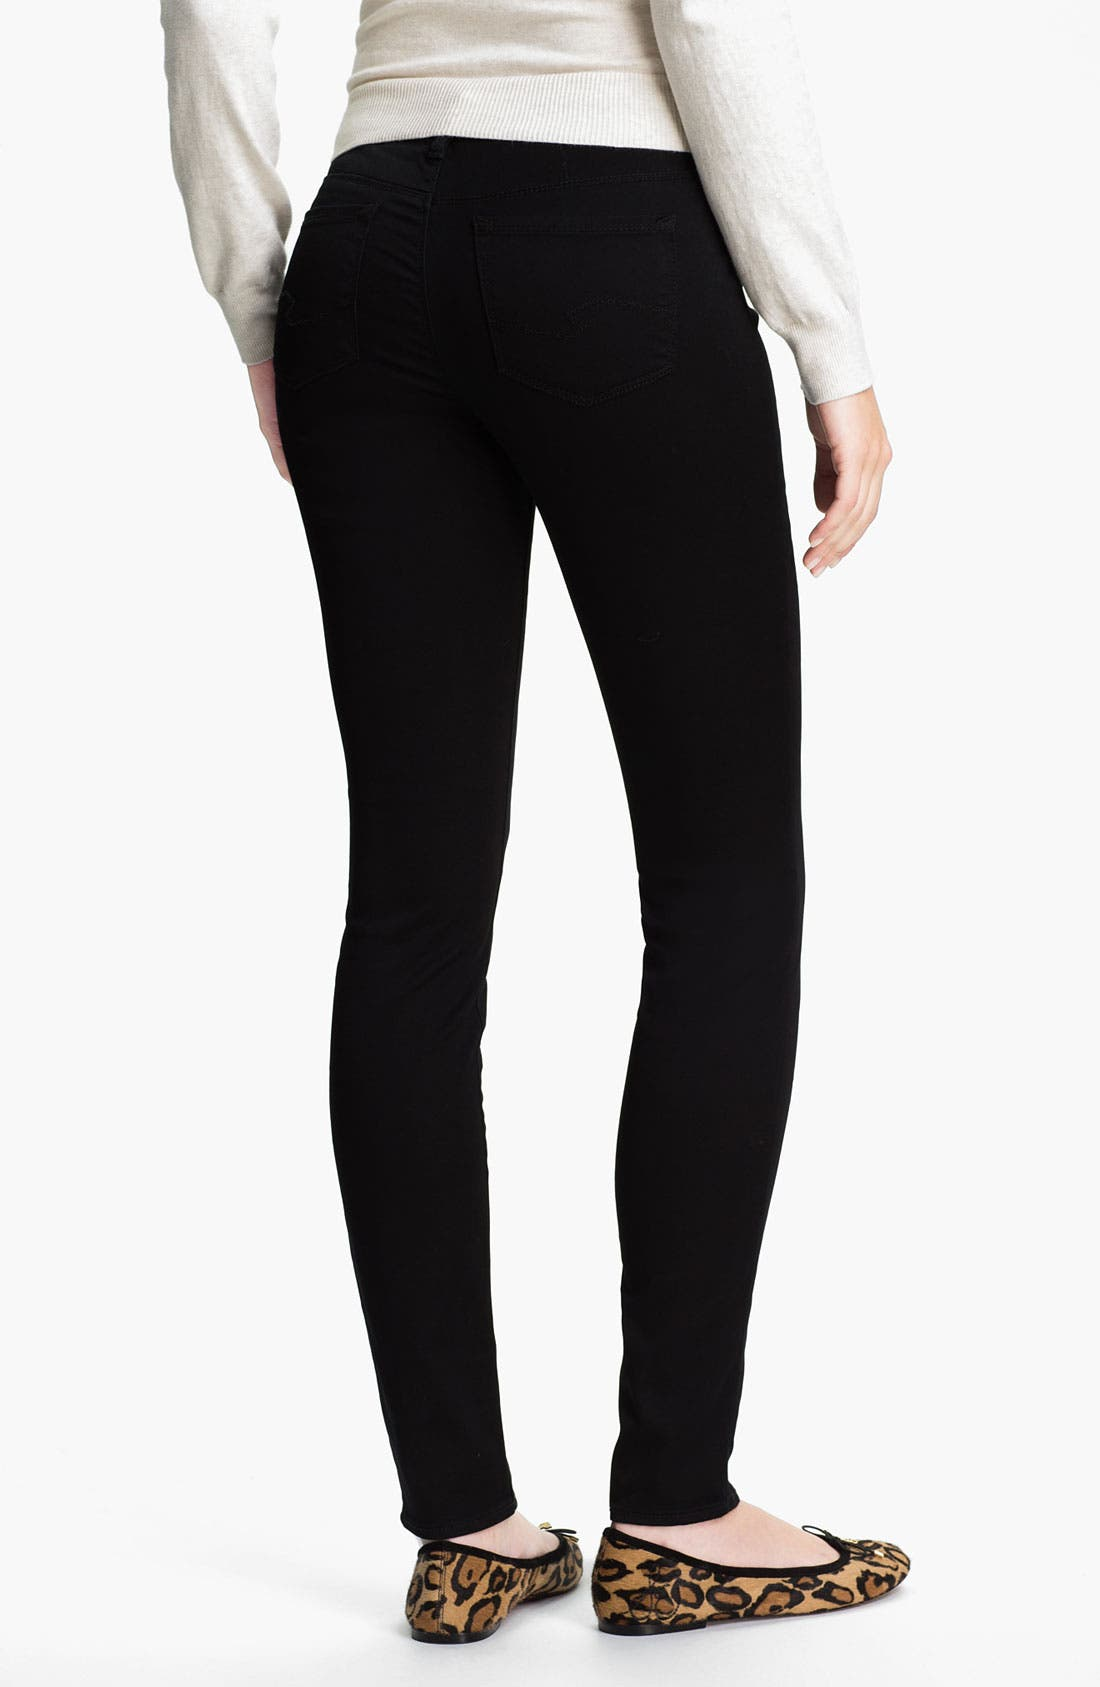 Alternate Image 1 Selected - Silver Jeans Co. 'Ashlee' Stretch Skinny Jeans (Juniors)